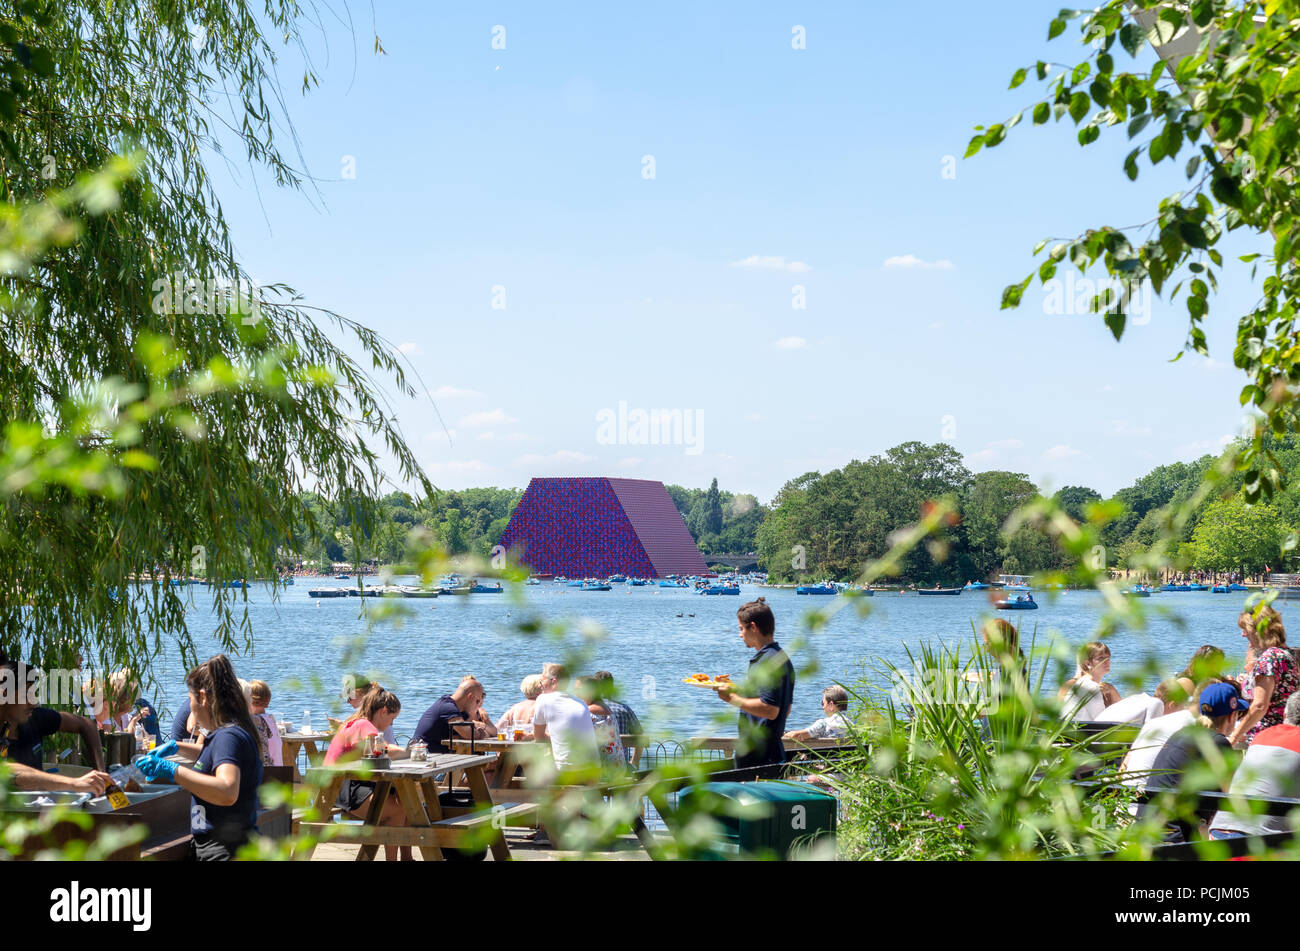 Tourists at the Serpentine at Hyde Park Christo's Mastaa floating in the background. - Stock Image